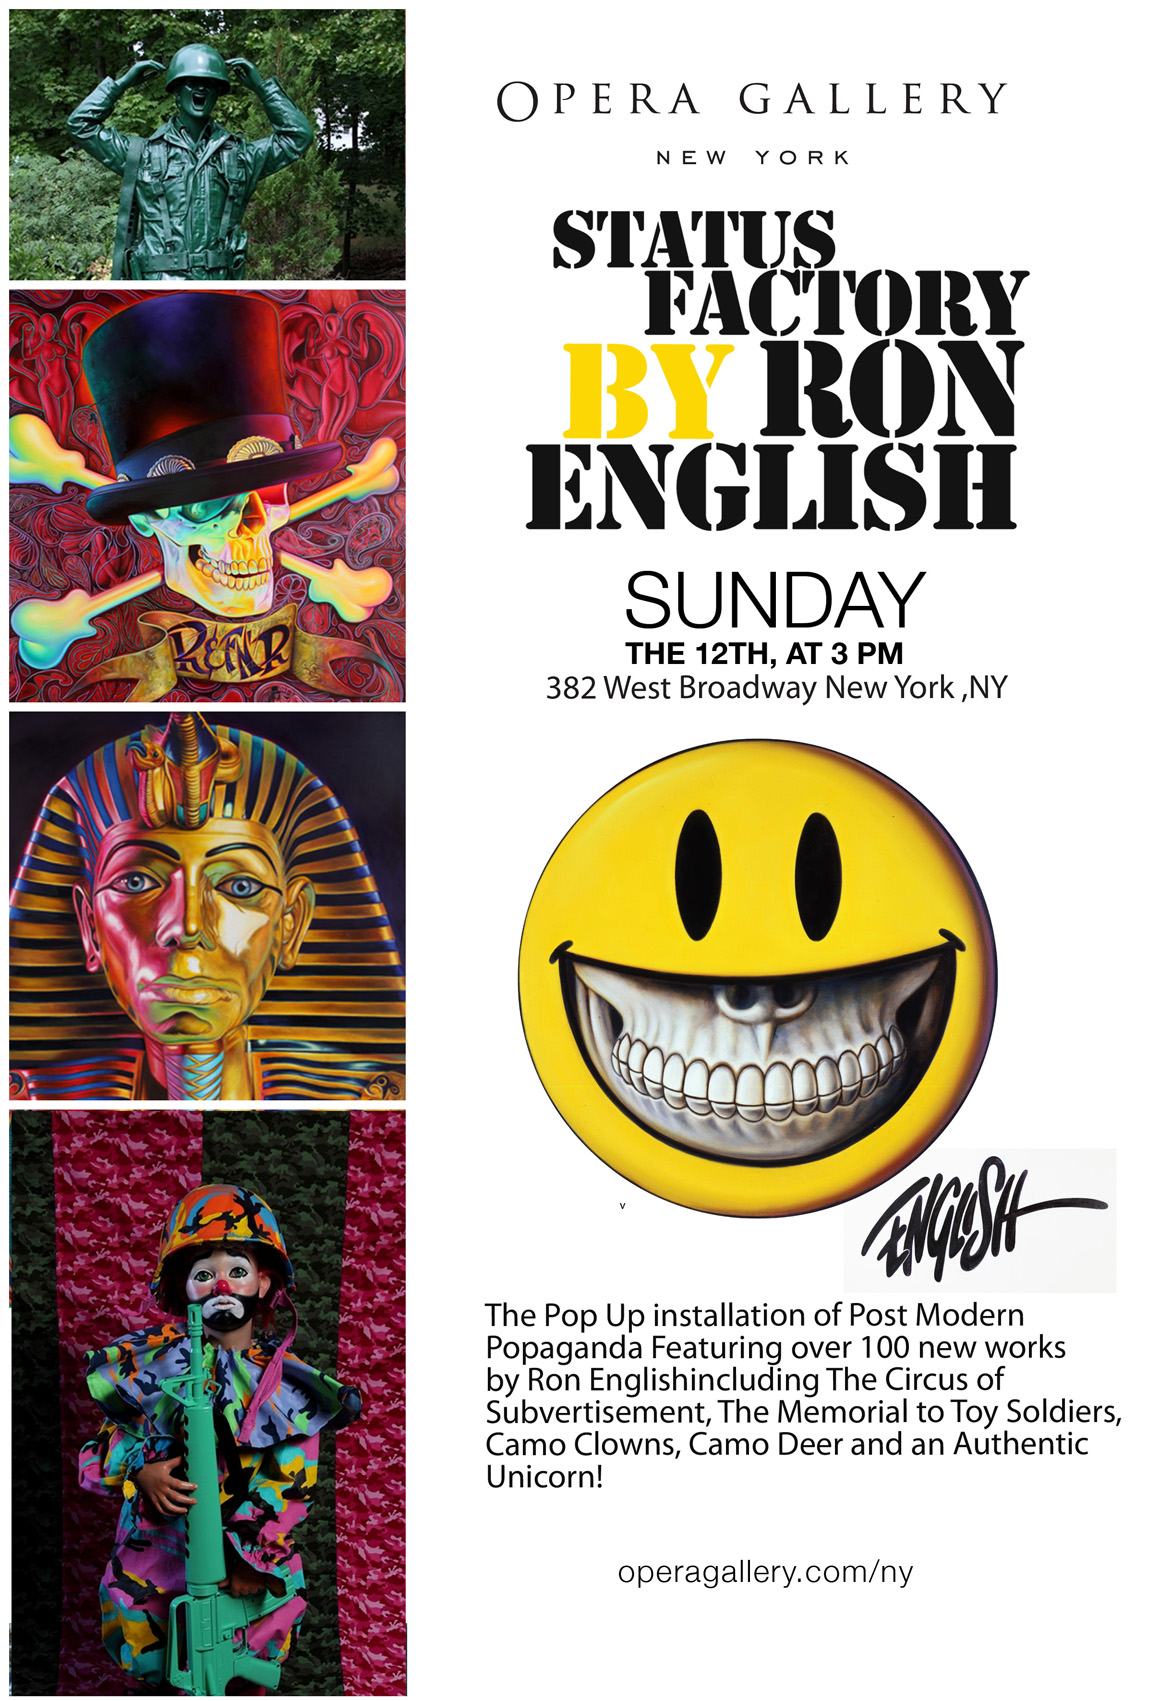 Opera Gallery NY Presents: Ron English